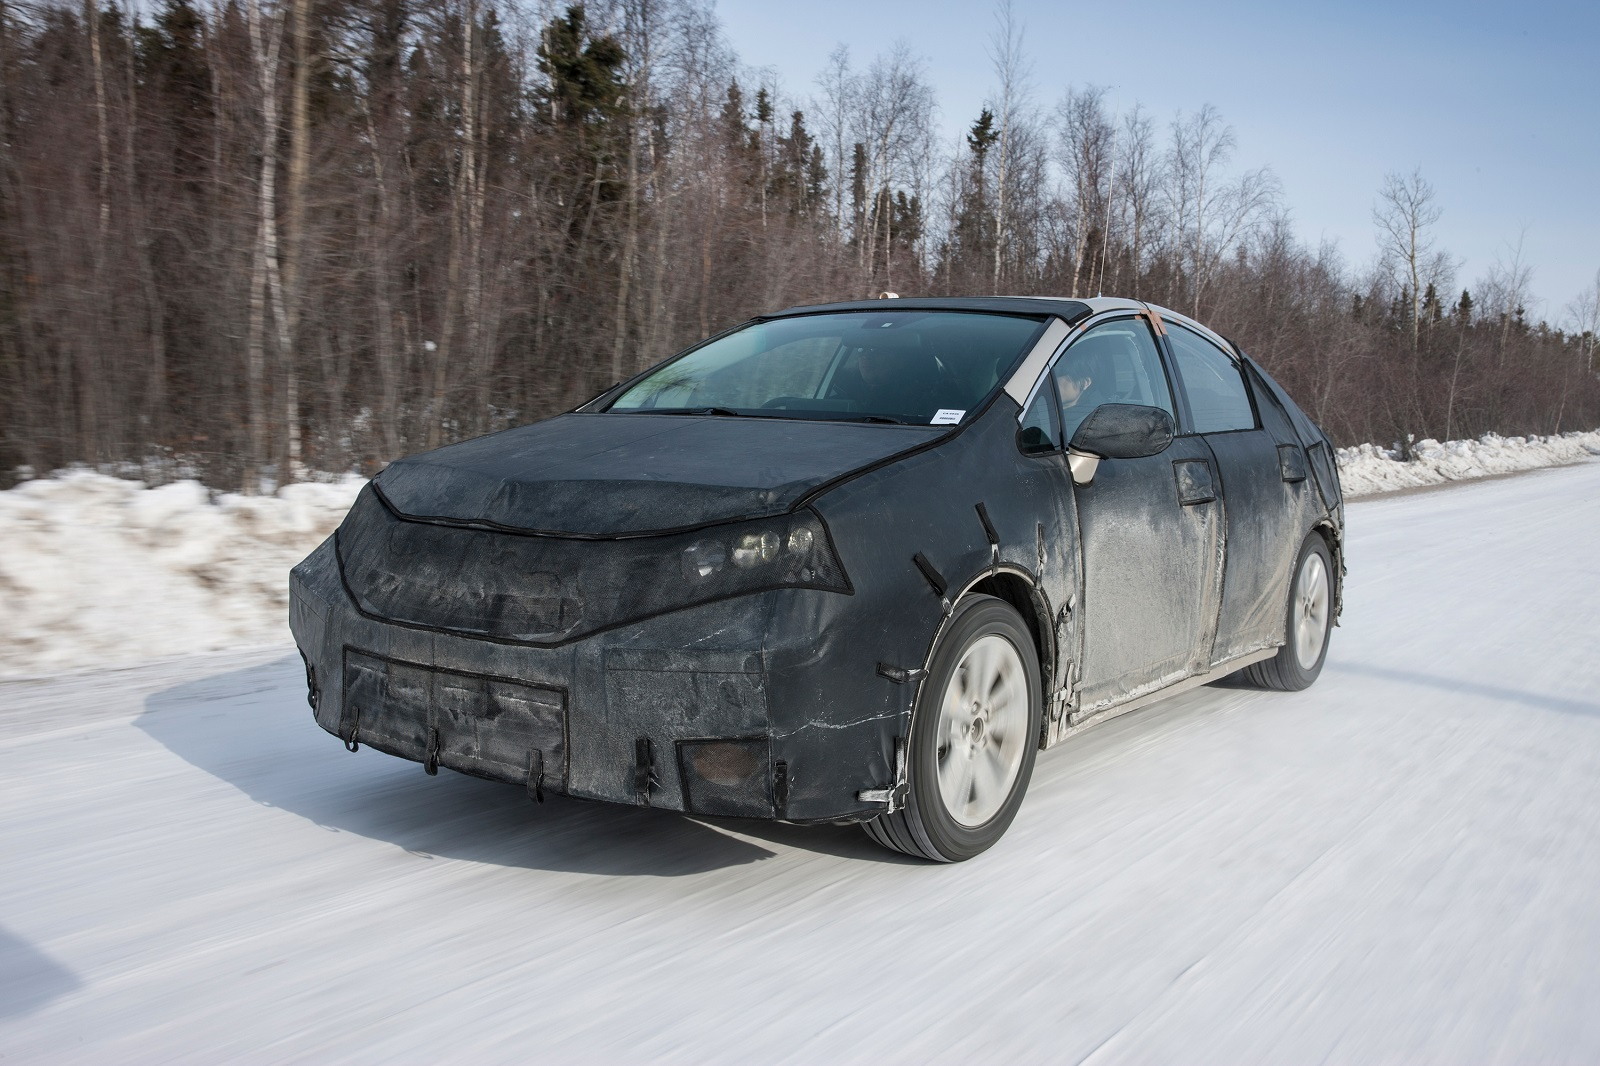 Toyota Fcv Hydrogen Fuel Cell Test Cars Concept Shown At Ces